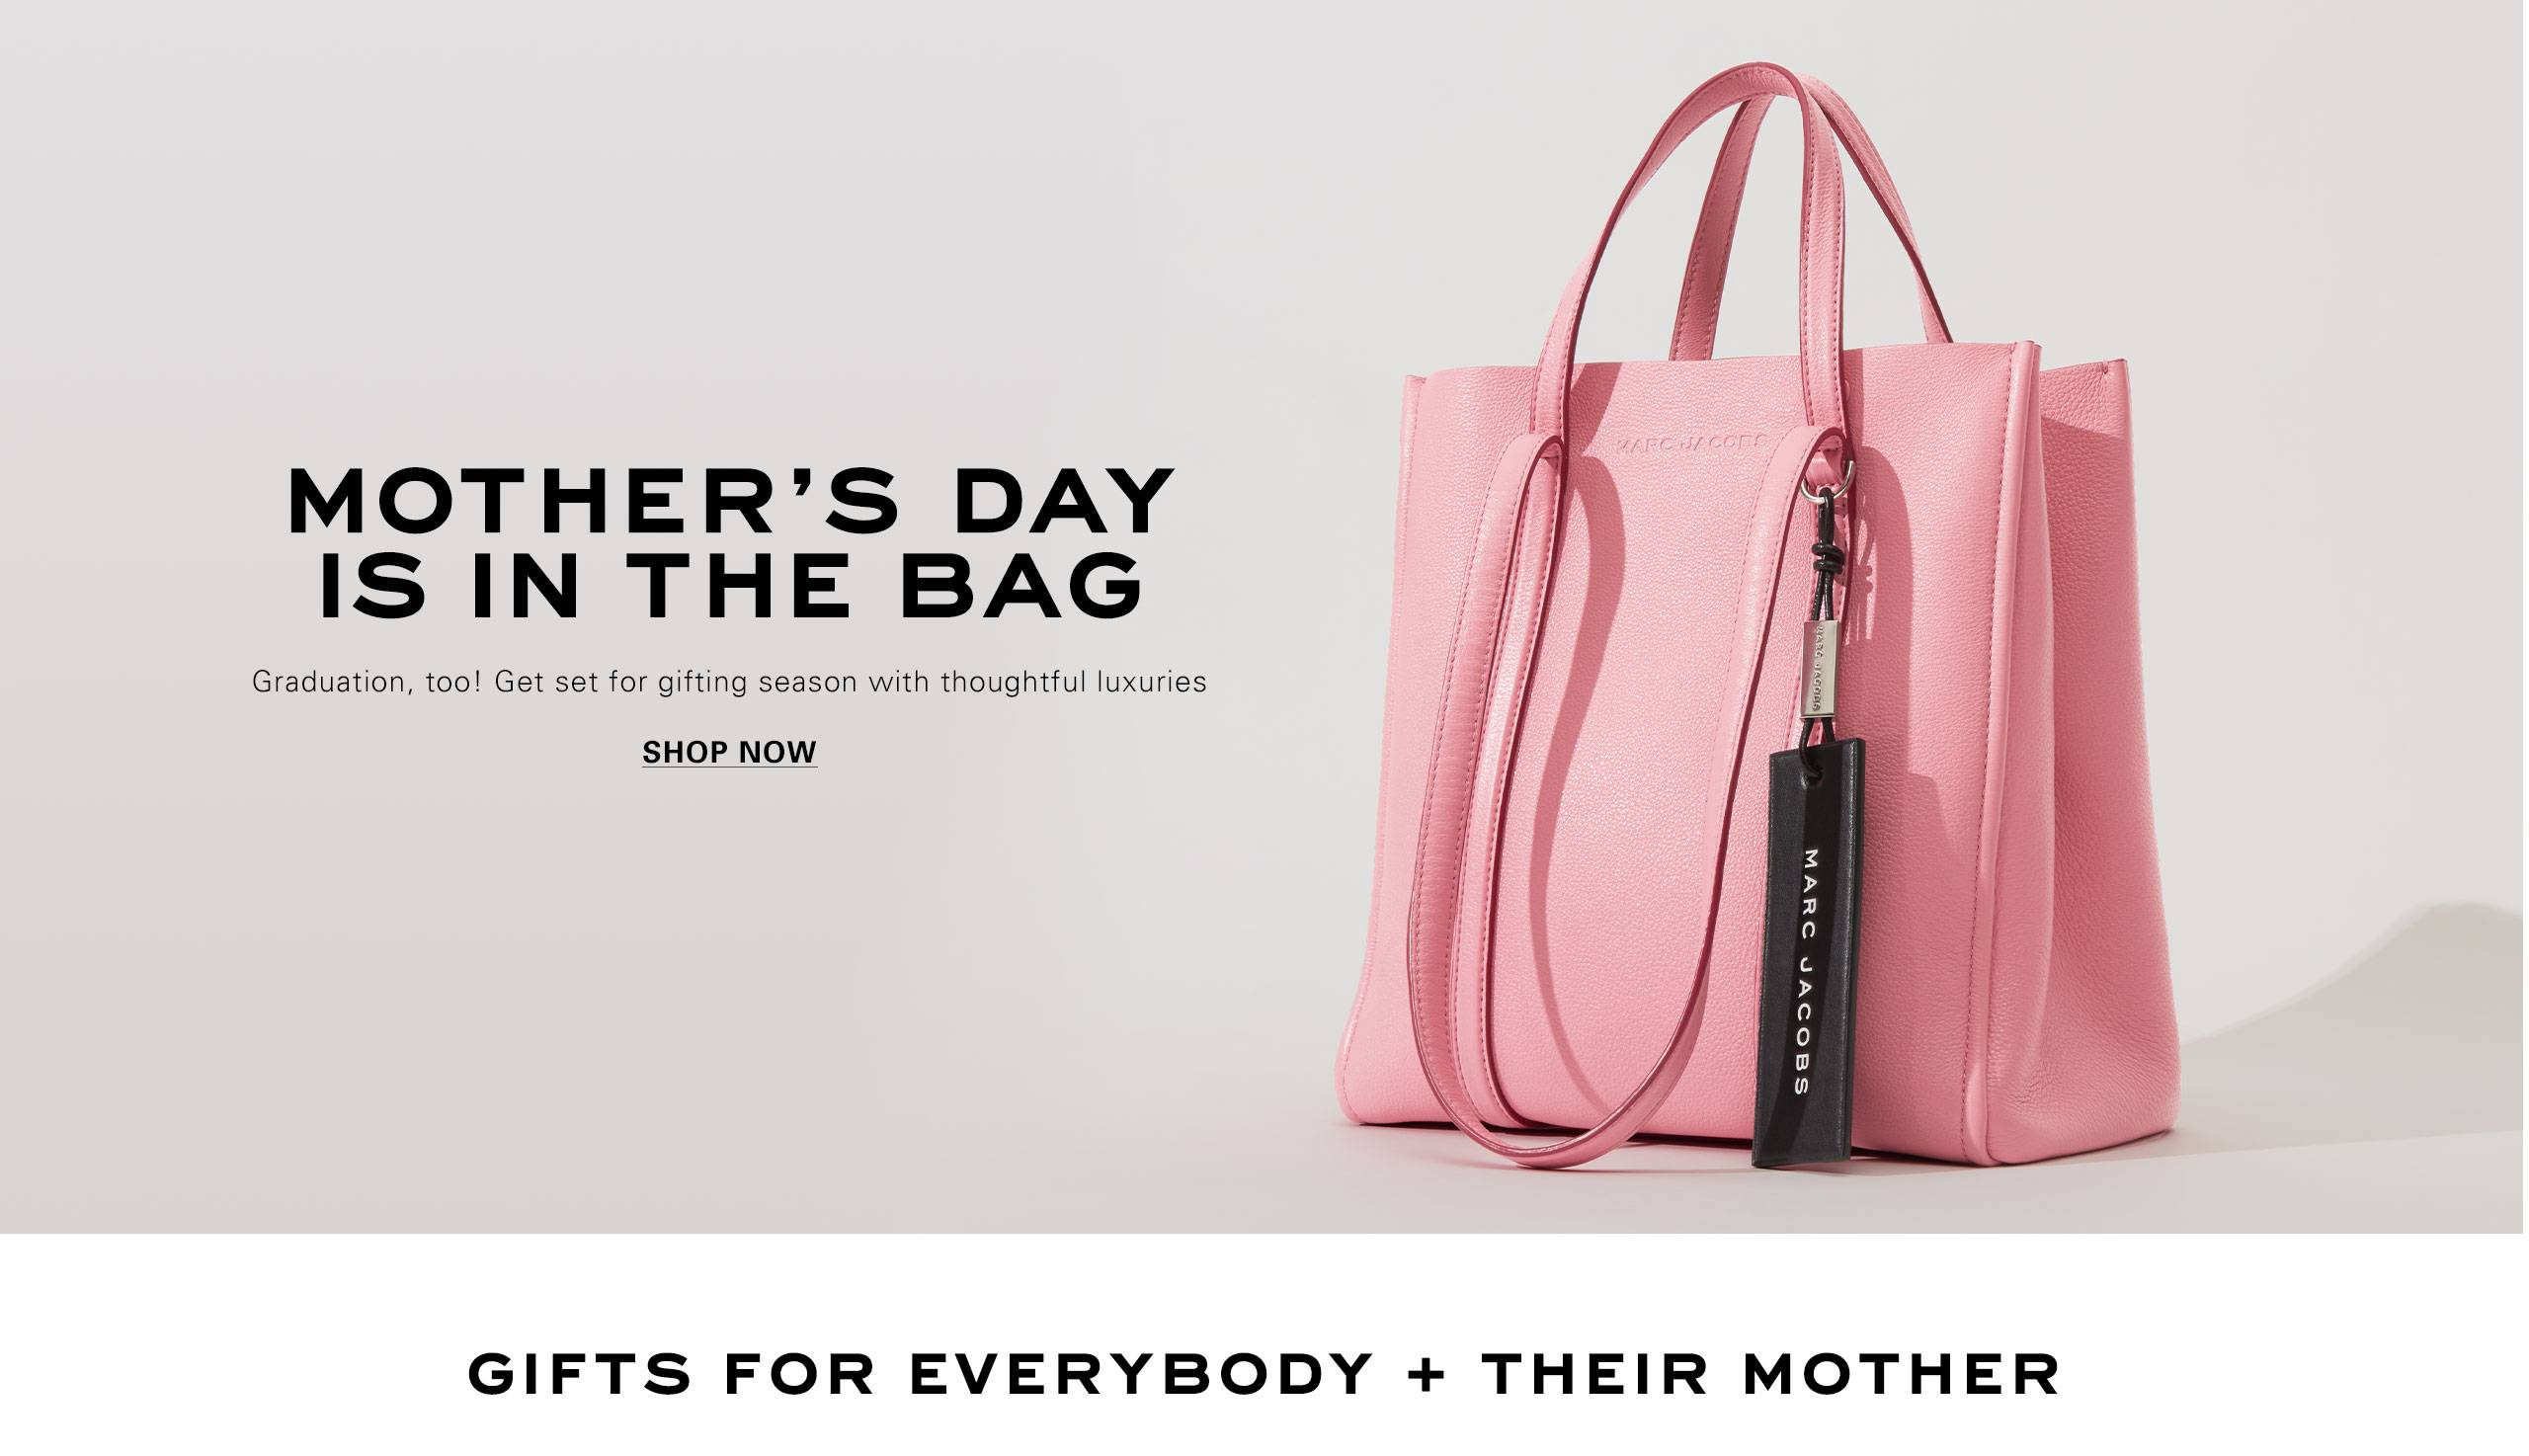 ca49c9abbc1 Marc Jacobs - Grunge Sale 40% off · Mother s Day Is In The Bag  Graduation